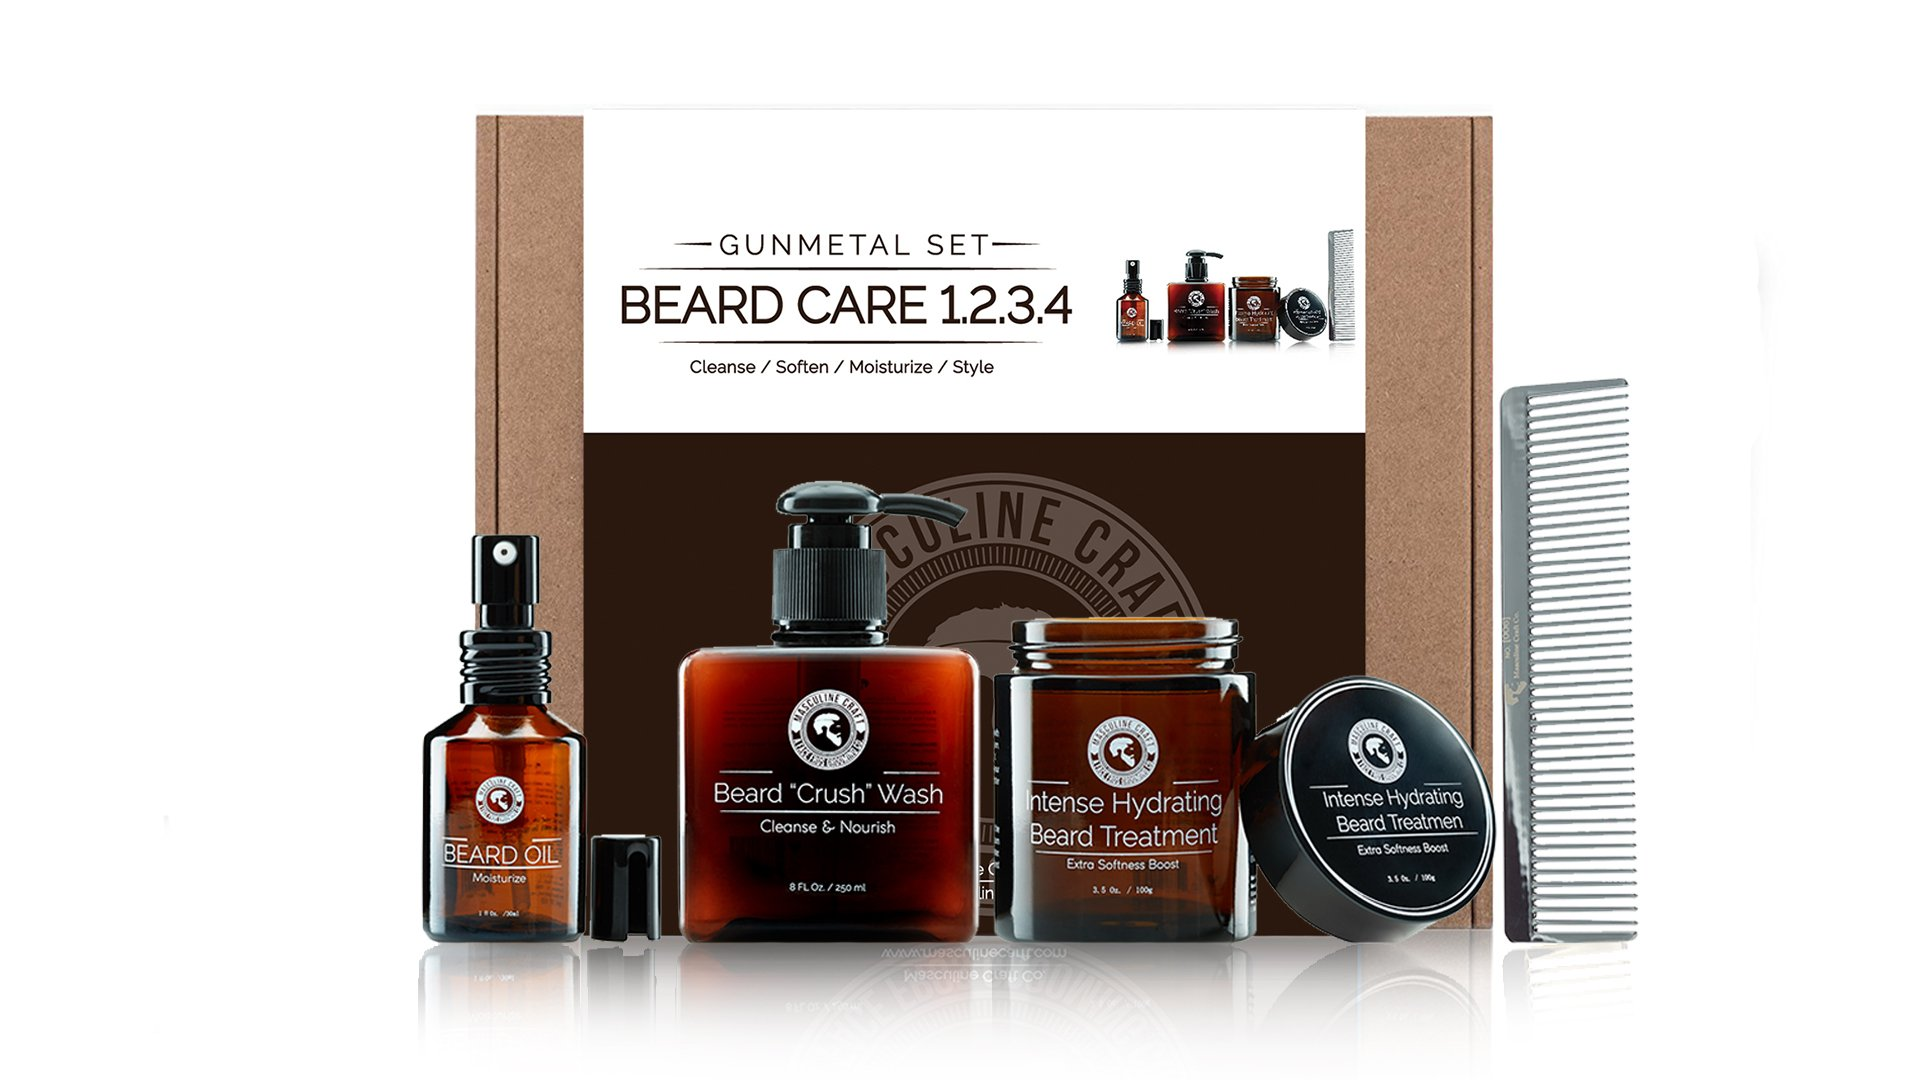 Masculine Craft Men's Beard Grooming Kit | Beard Maintenance Kit | Beard Care Products Includes Beard Care Shampoo + Beard Care Conditioner + Beard Growth Oil + Stainless Steel Metal Beard Comb